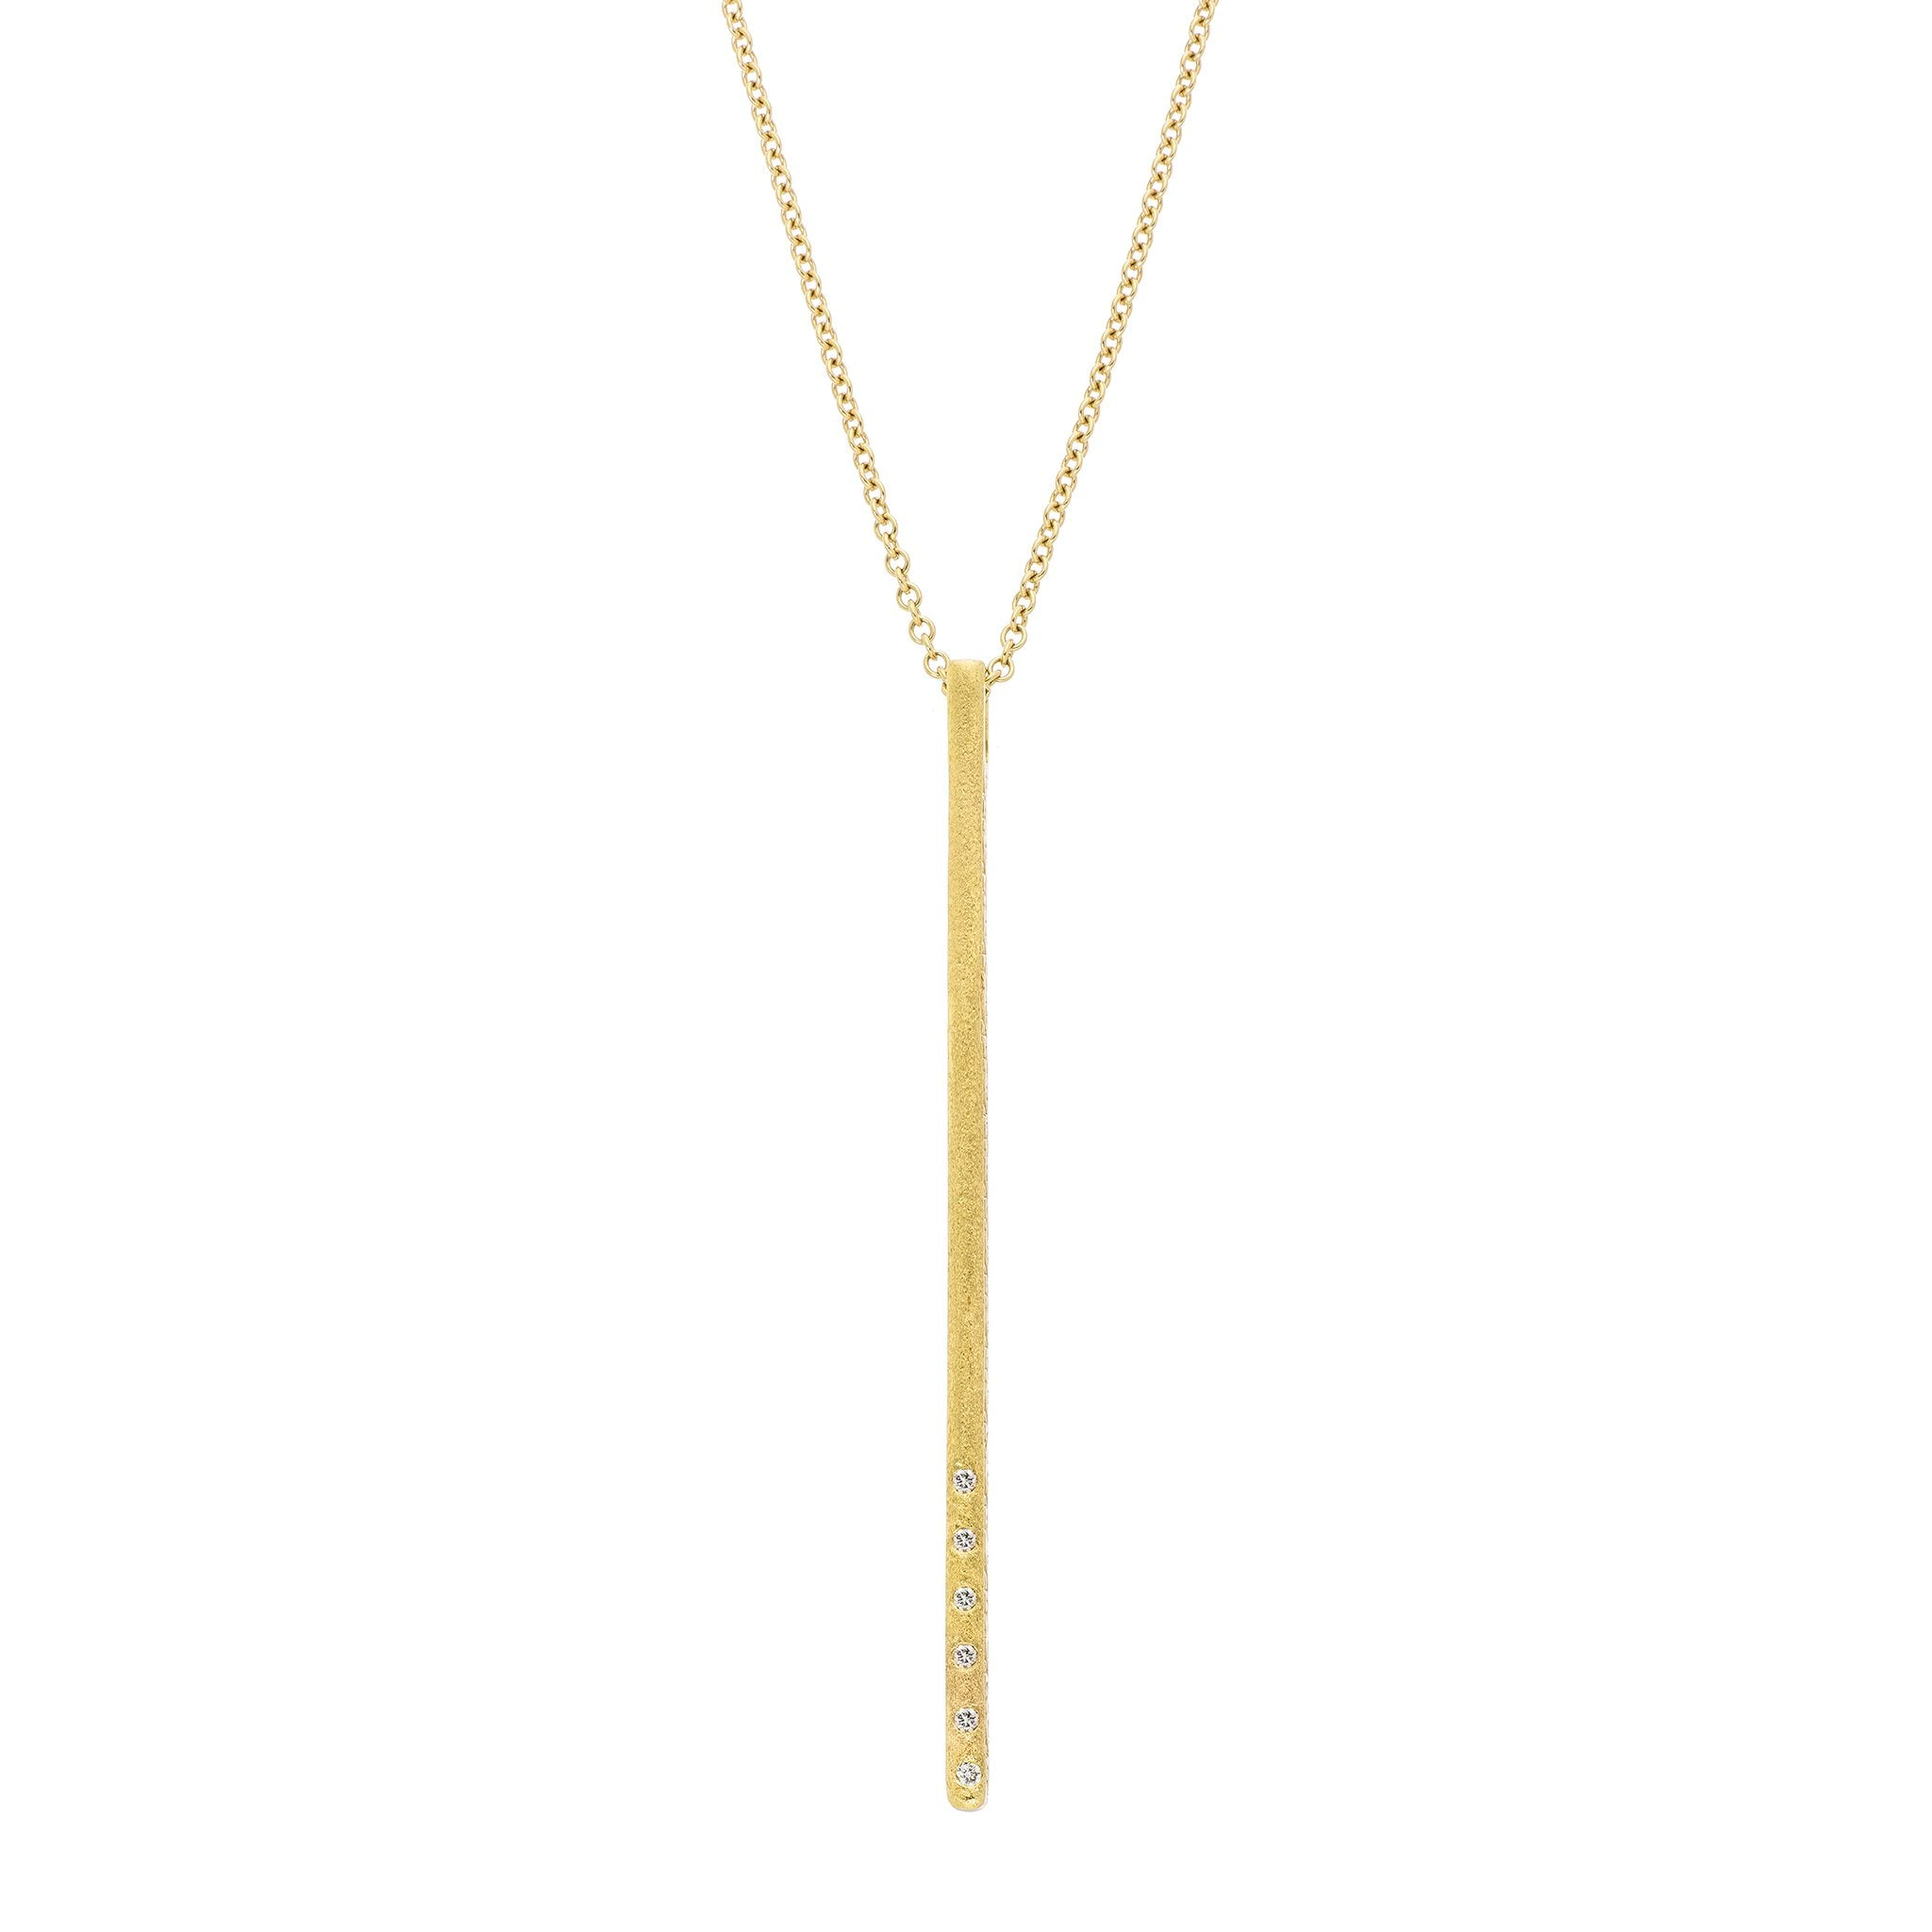 The Dunes Bar Necklace